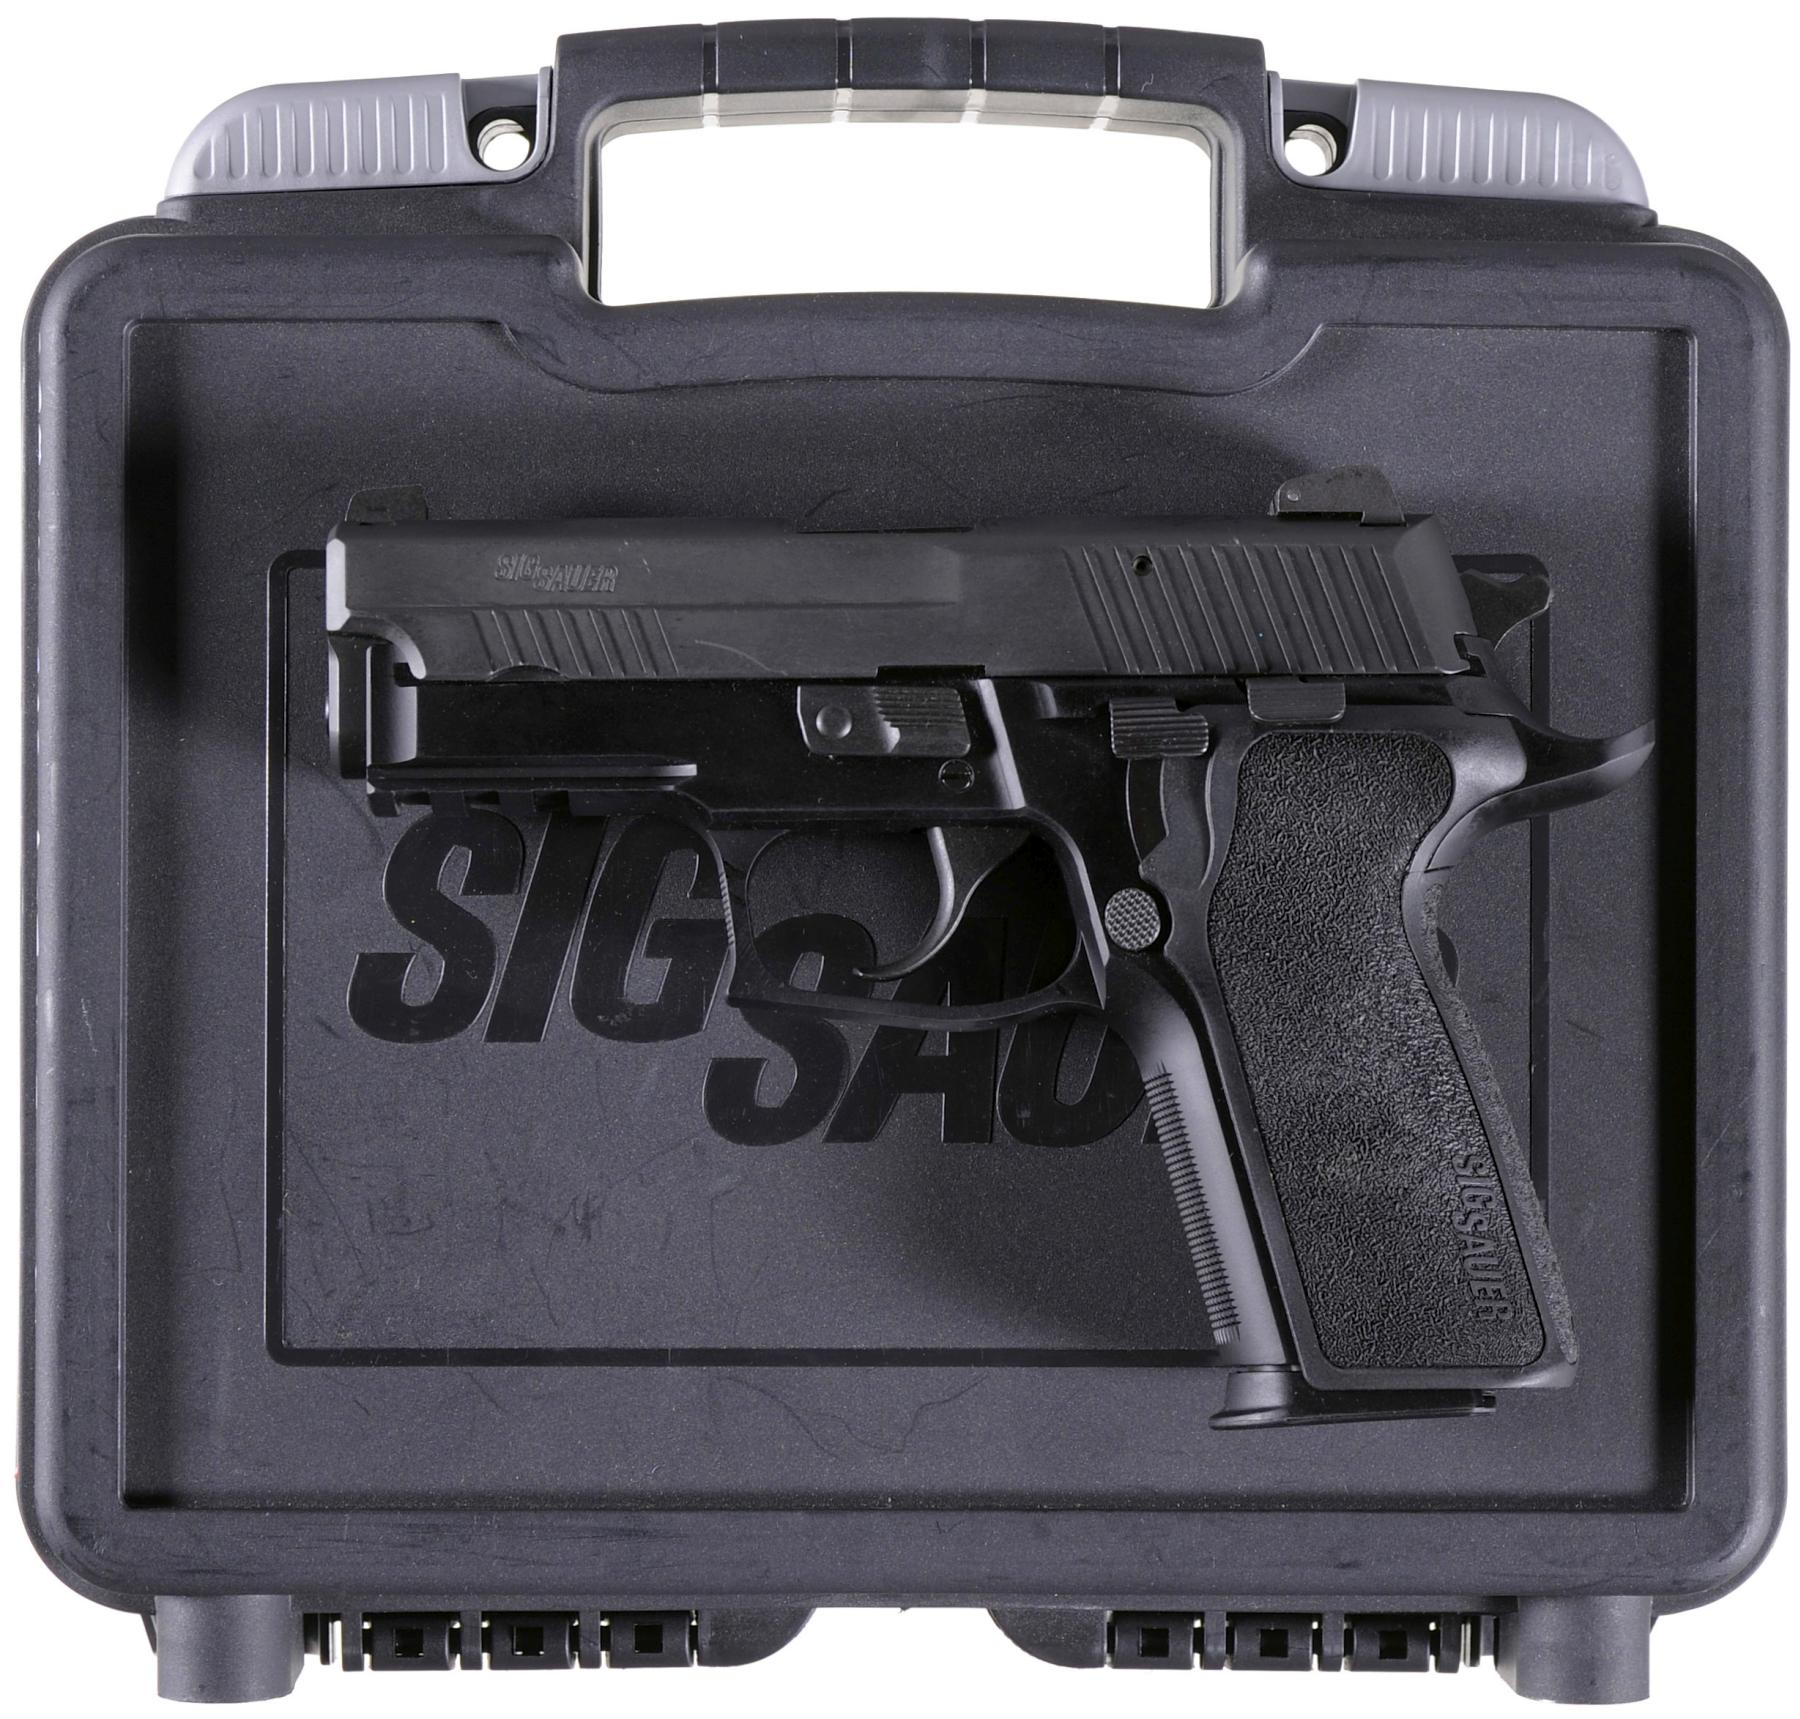 sig arms p229 pistol 40 s w